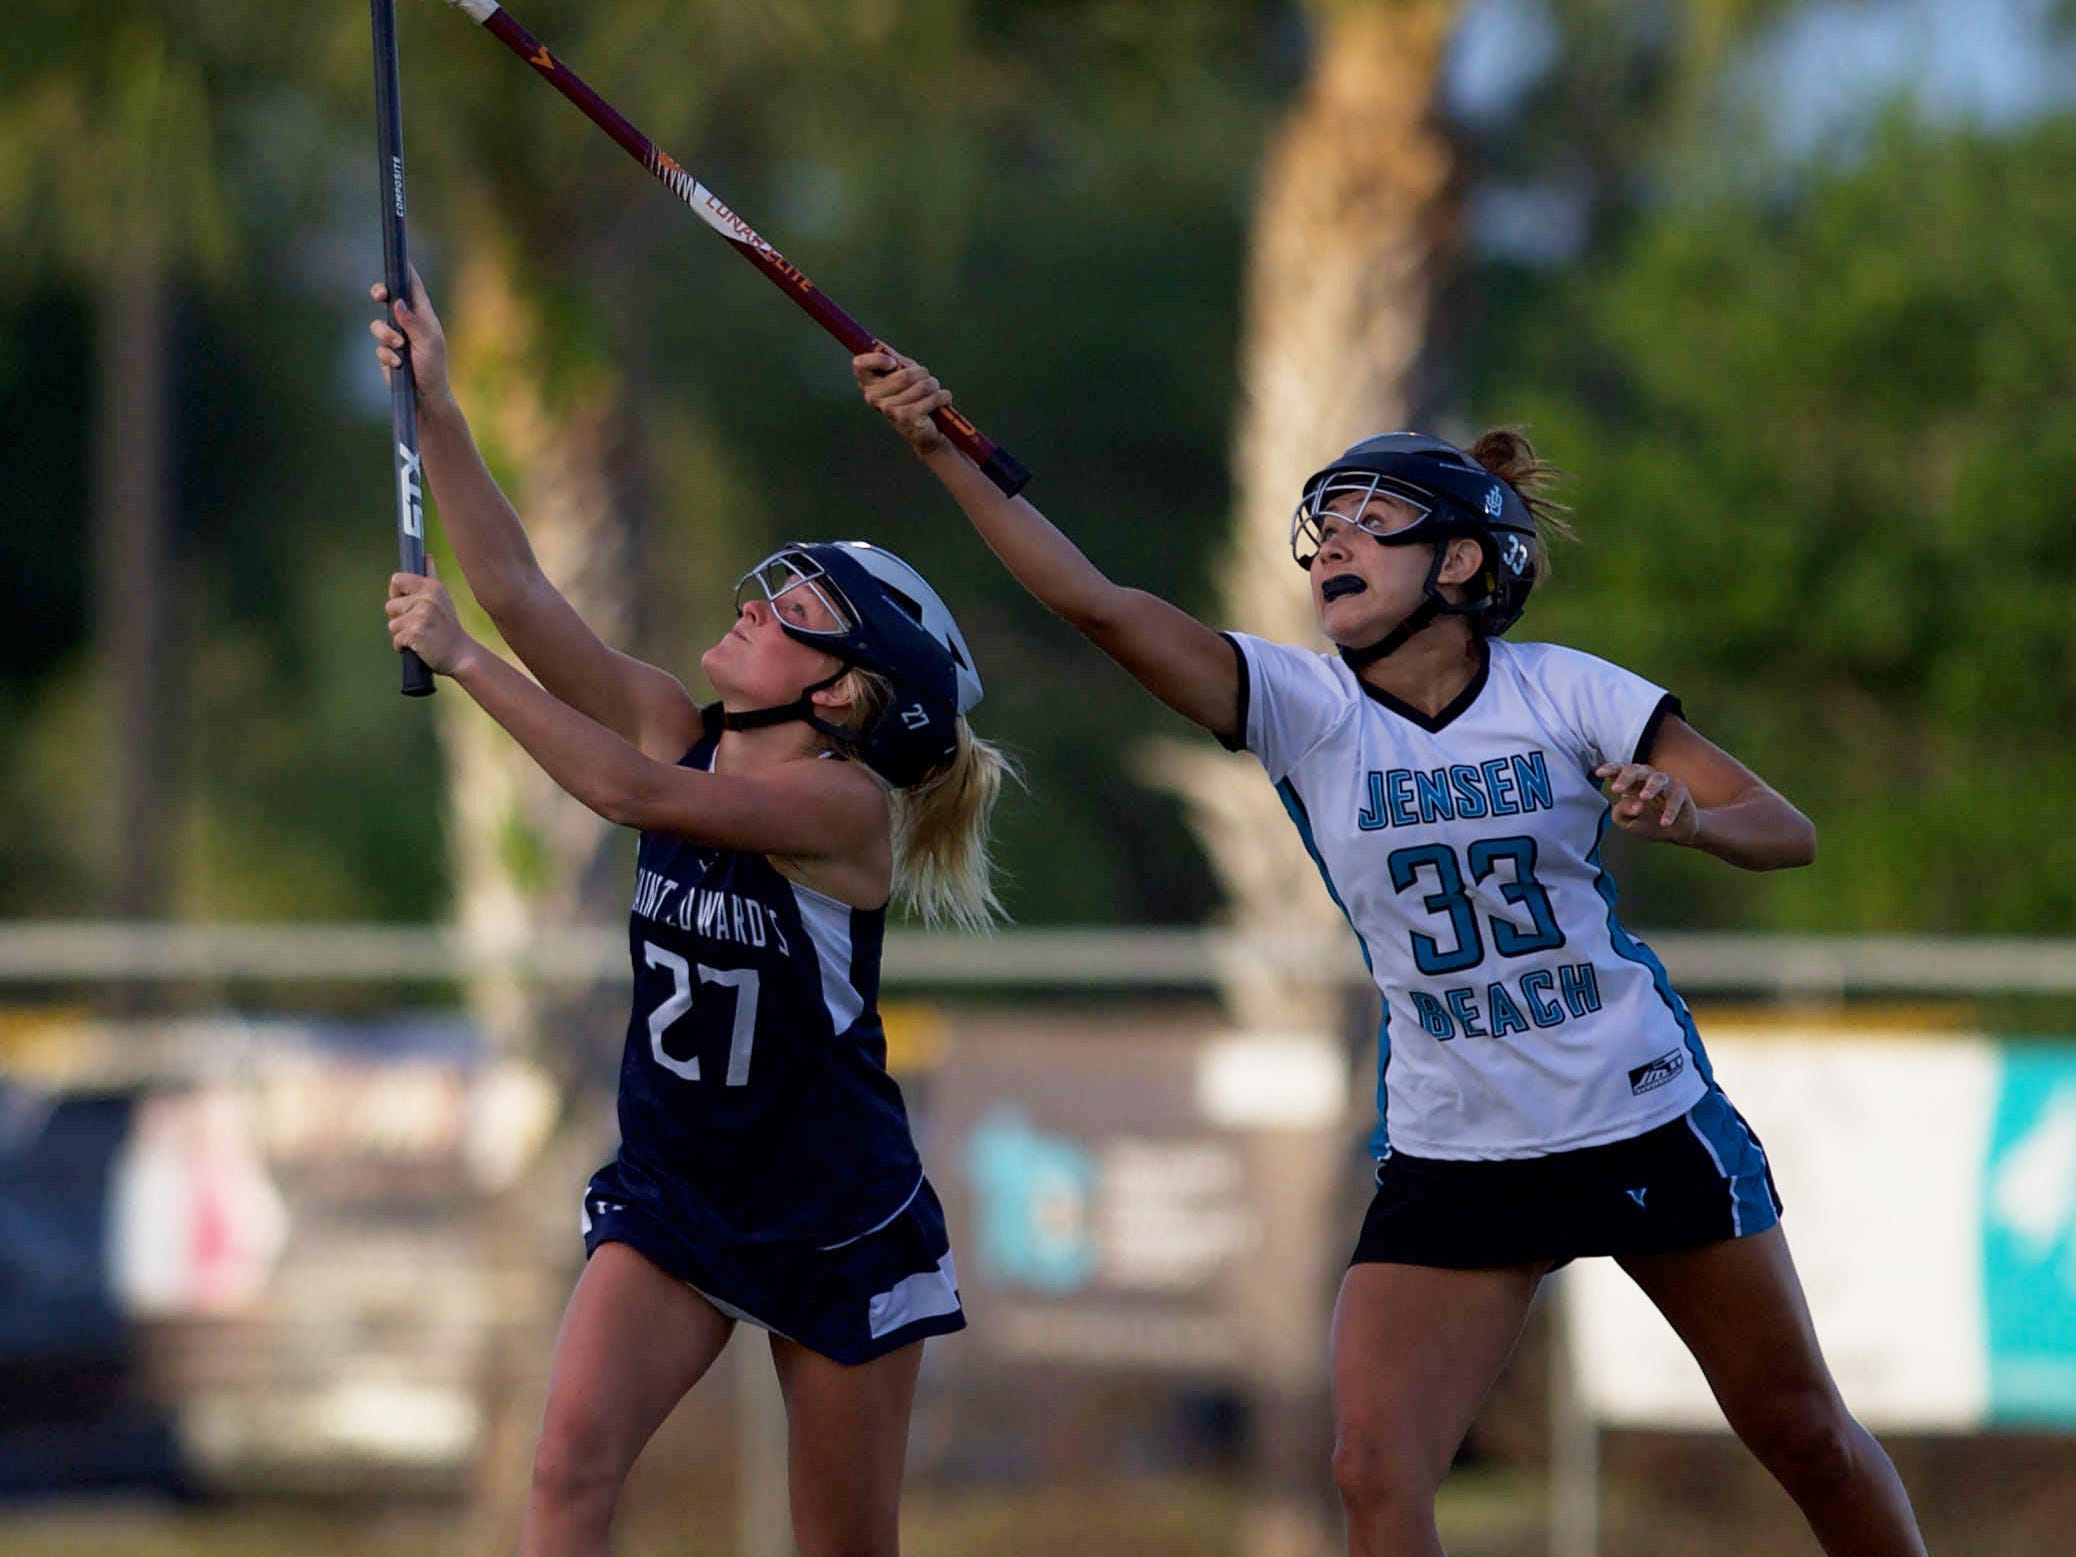 Jensen Beach plays against St. Edward's at the high school girls lacrosse game Thursday, March 28, 2019, at Jensen Beach High School.